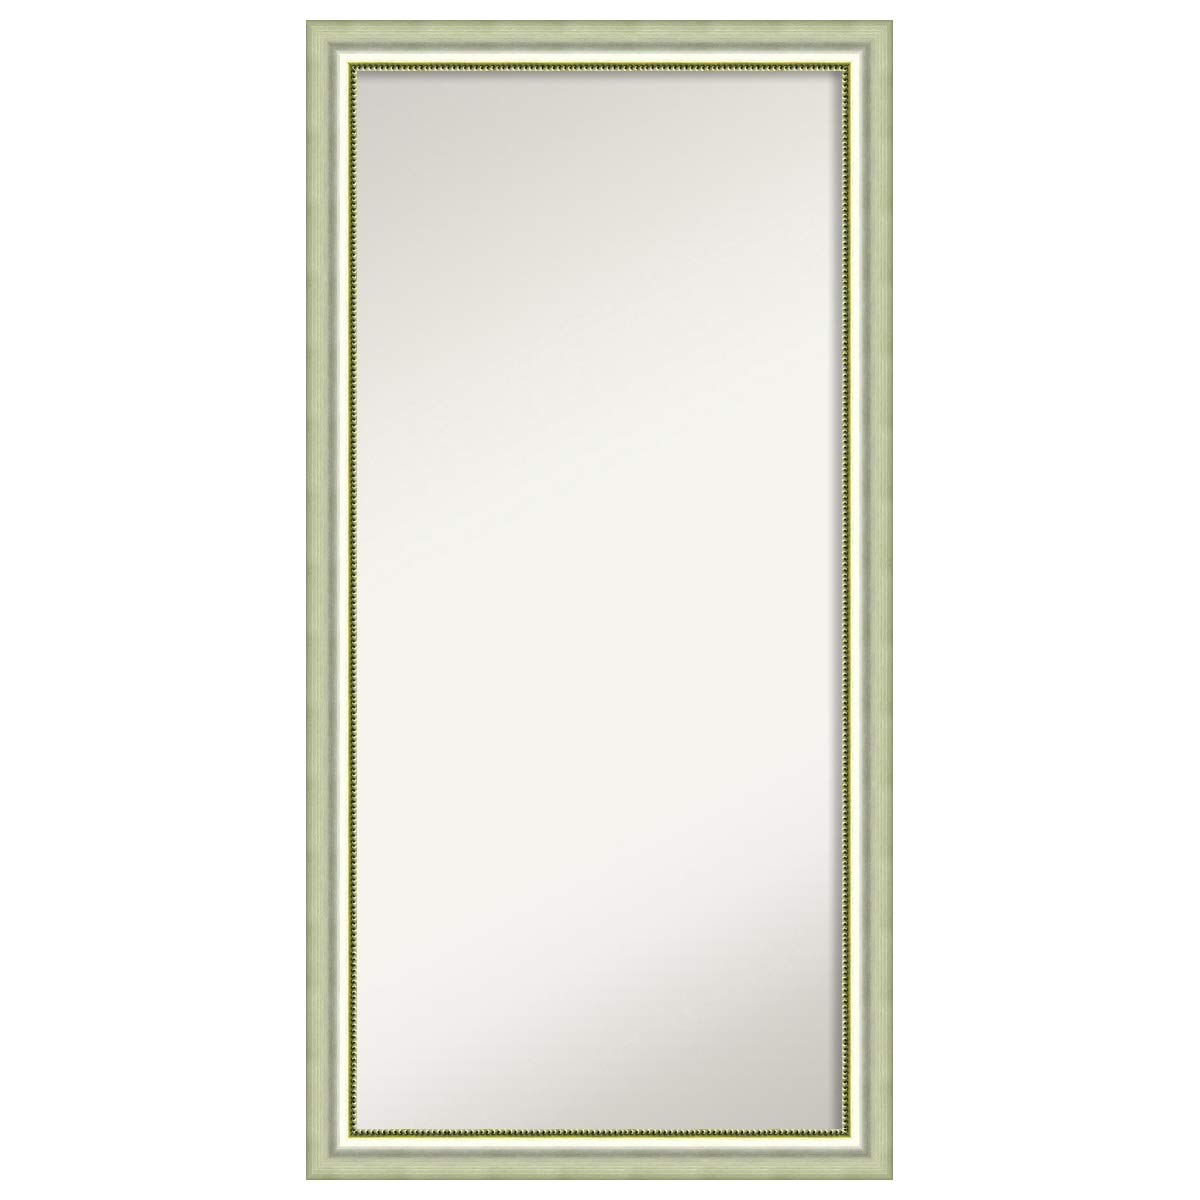 Trendy Traditional Square Glass Wall Mirrors Regarding Amazon: Amanti Art Framed Vegas Silver Solid Wood Wall Mirrors (View 17 of 20)